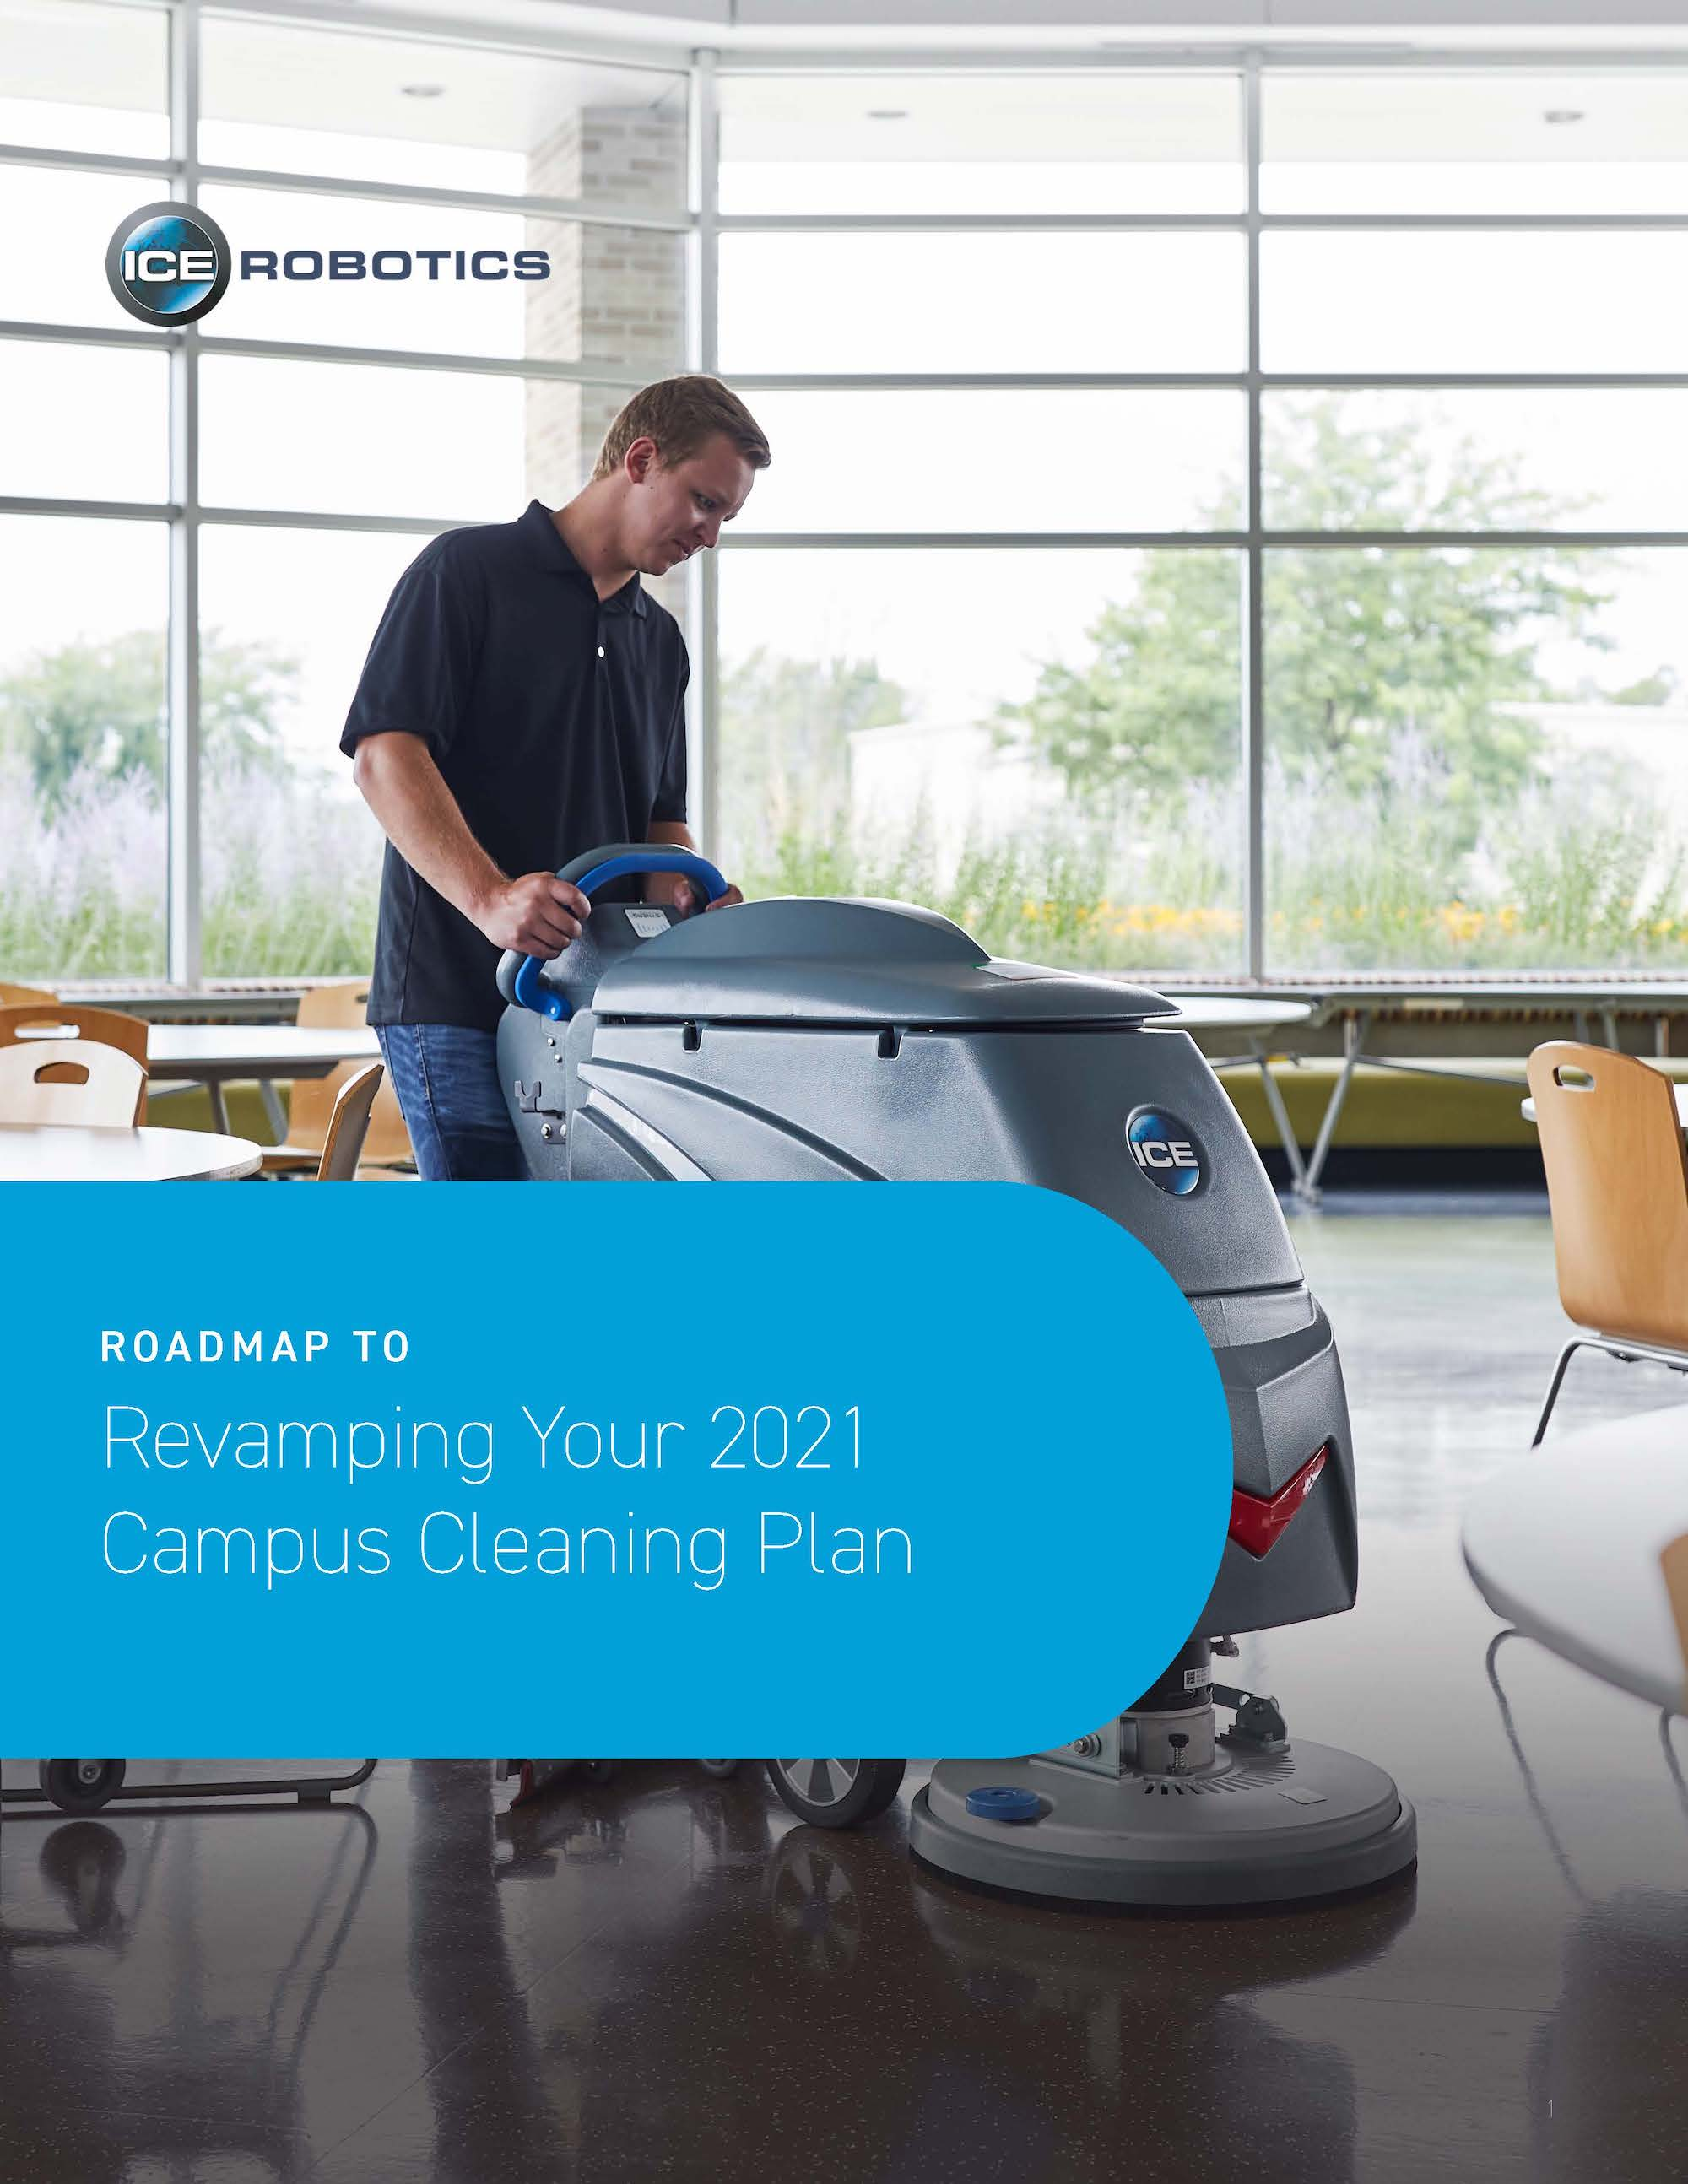 Roadmap to Revamping Your 2021 Campus Cleaning Plan